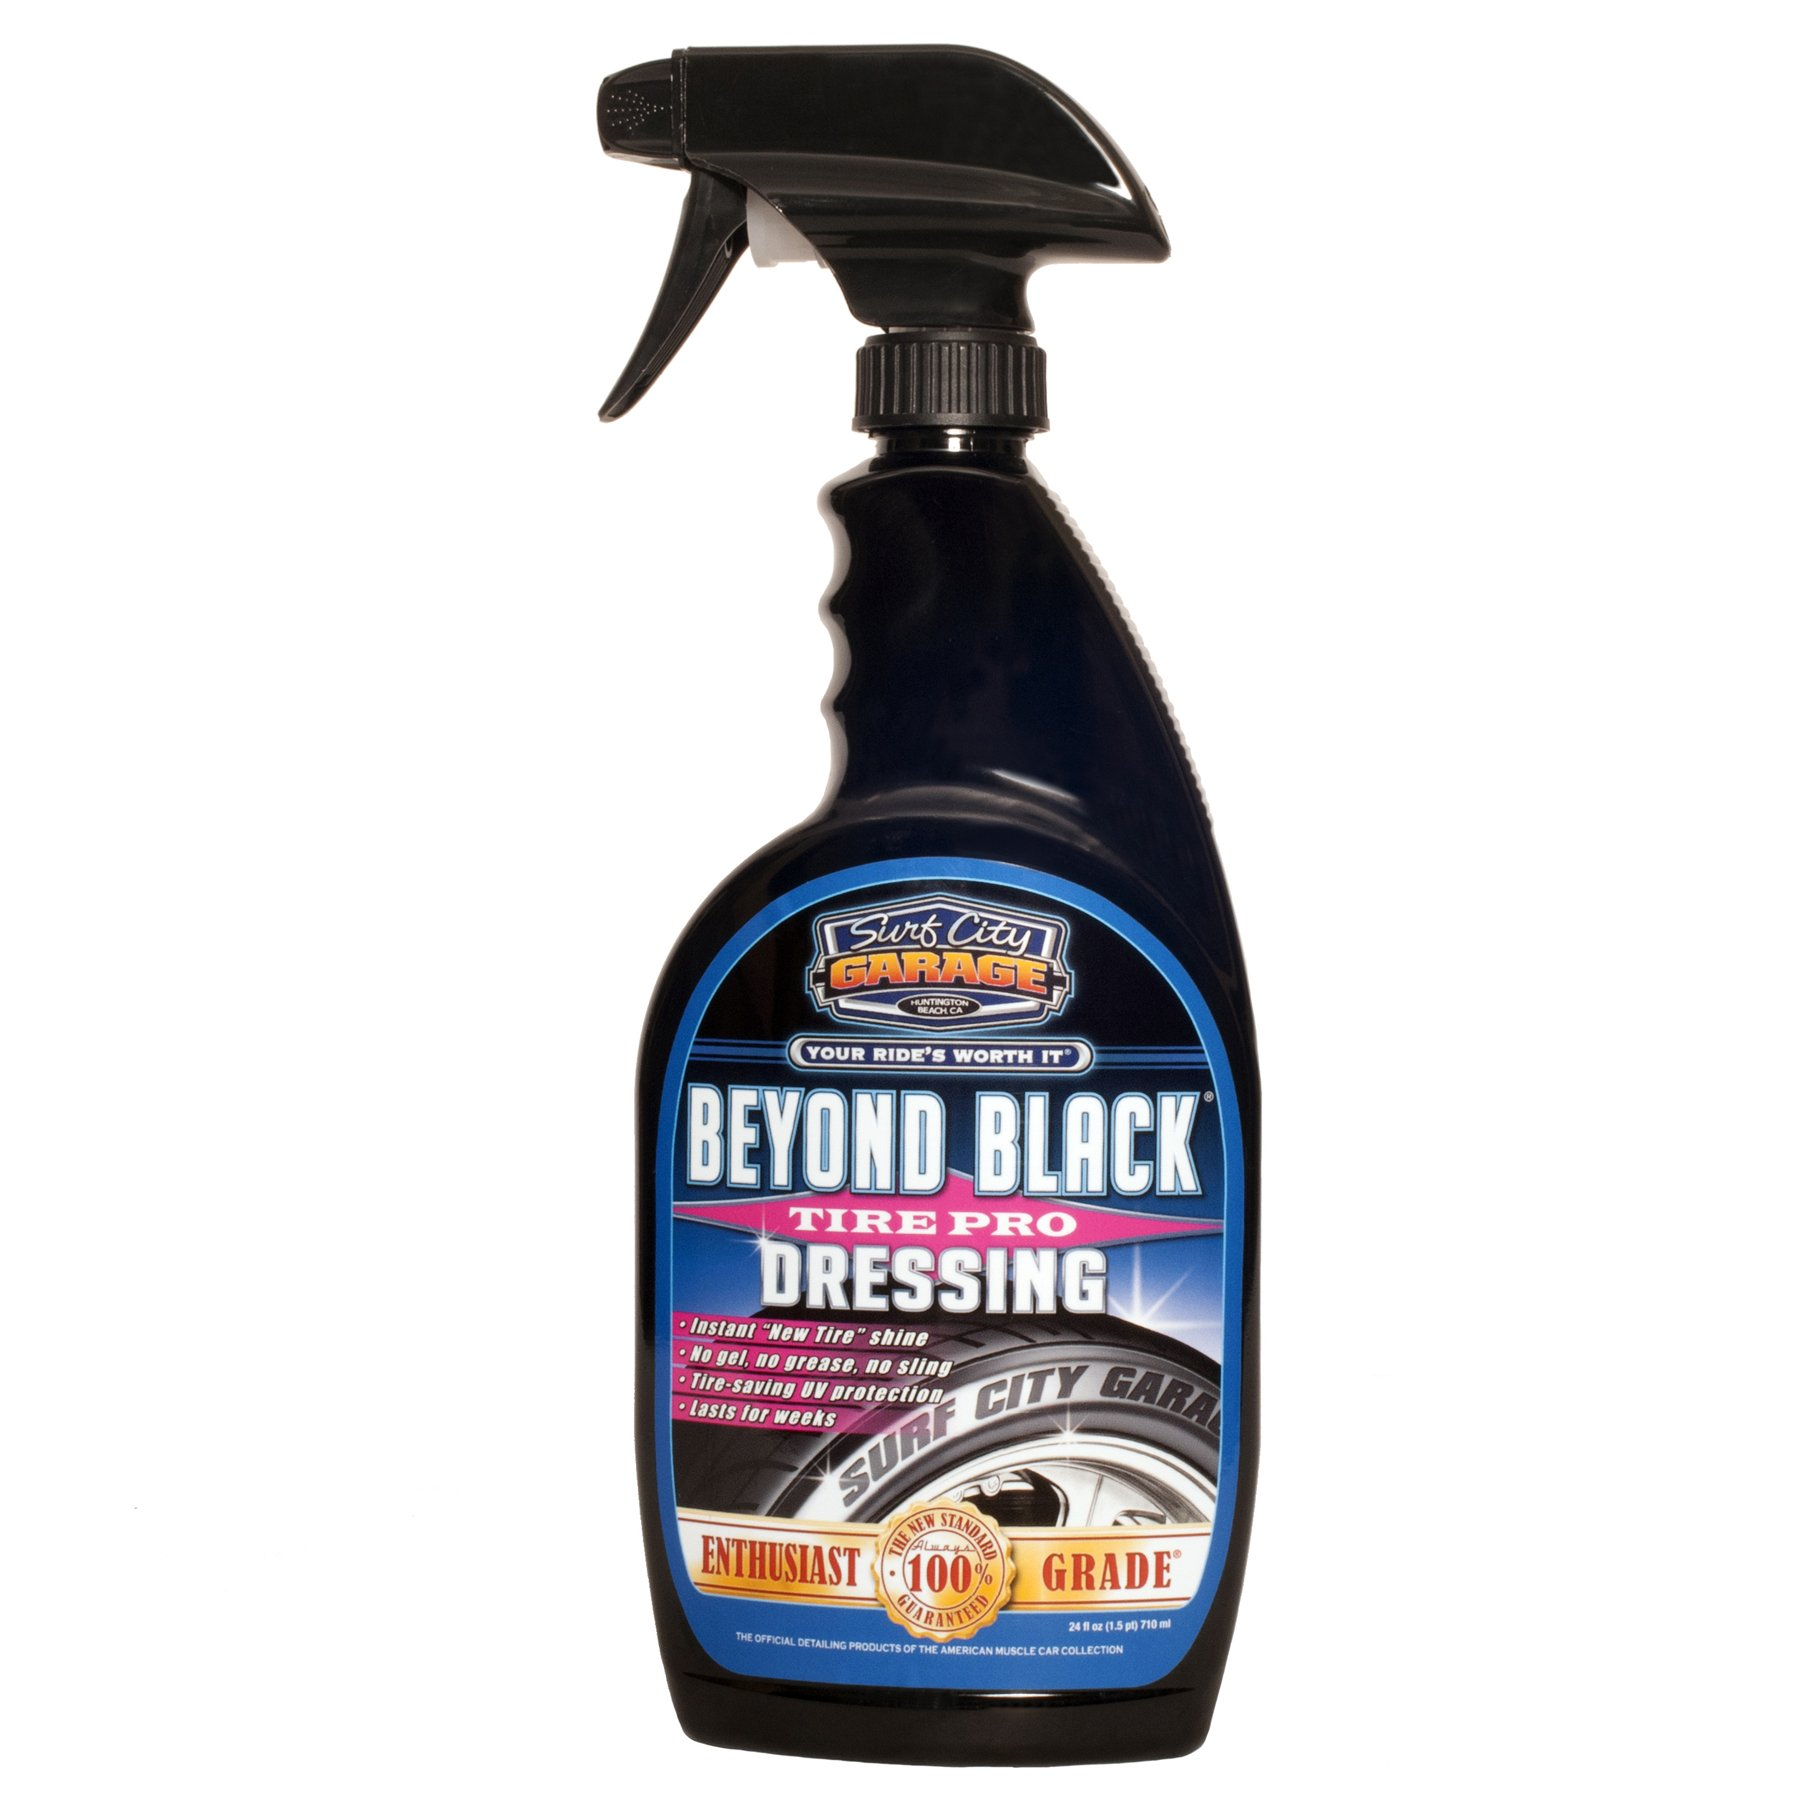 Surf City Garage 24 oz 104 Beyond Black Tire Dressing 24oz - Water -Based, Natural Low Shine Clean Finish, Non Greasy - Won't Attract Dust, Extreme Protection from UV Rays